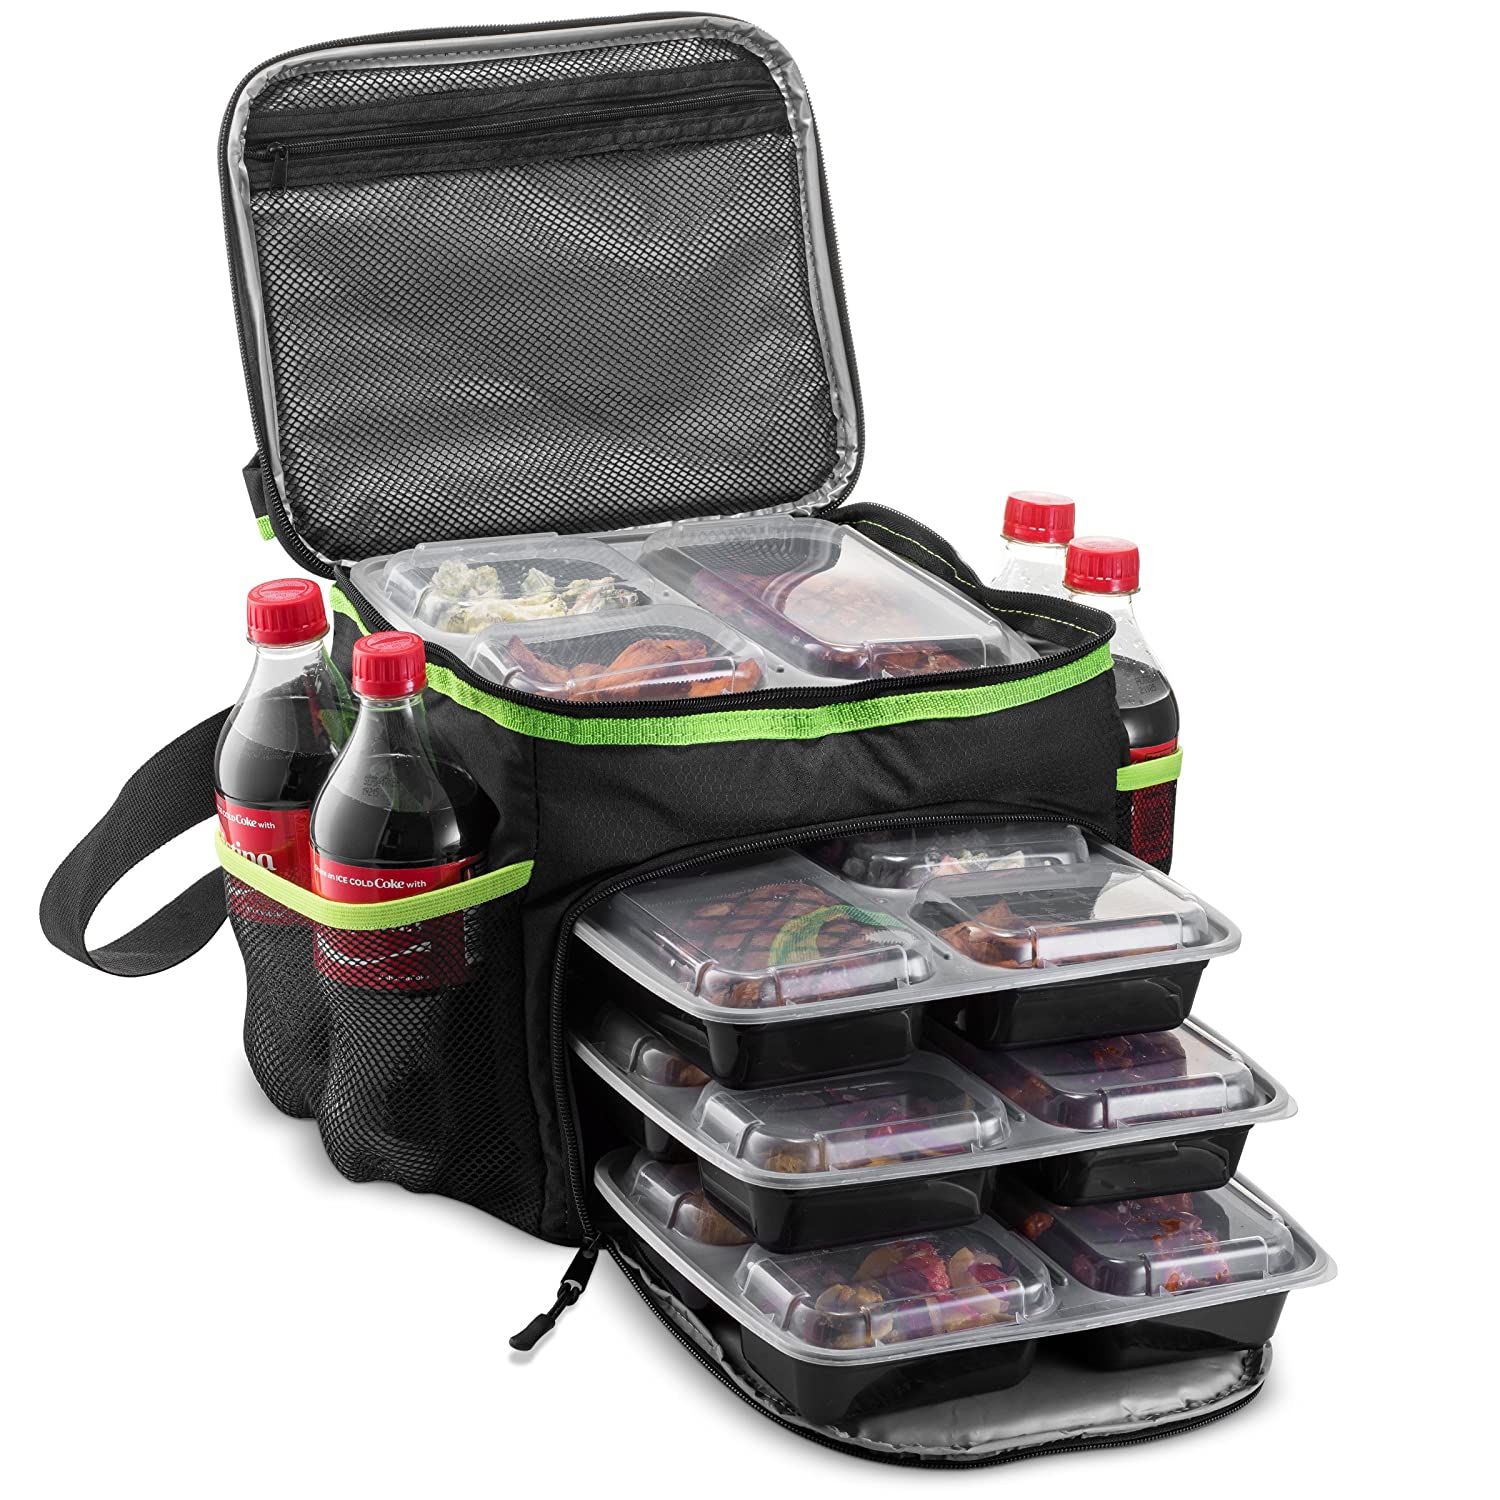 Outdoorwares Cooler Bag Insulated Large Capacity Bag Durable, Insulated Tote to Keep Foods and Drinks in The Right Temperature (11 x 10 x 9 Inches)